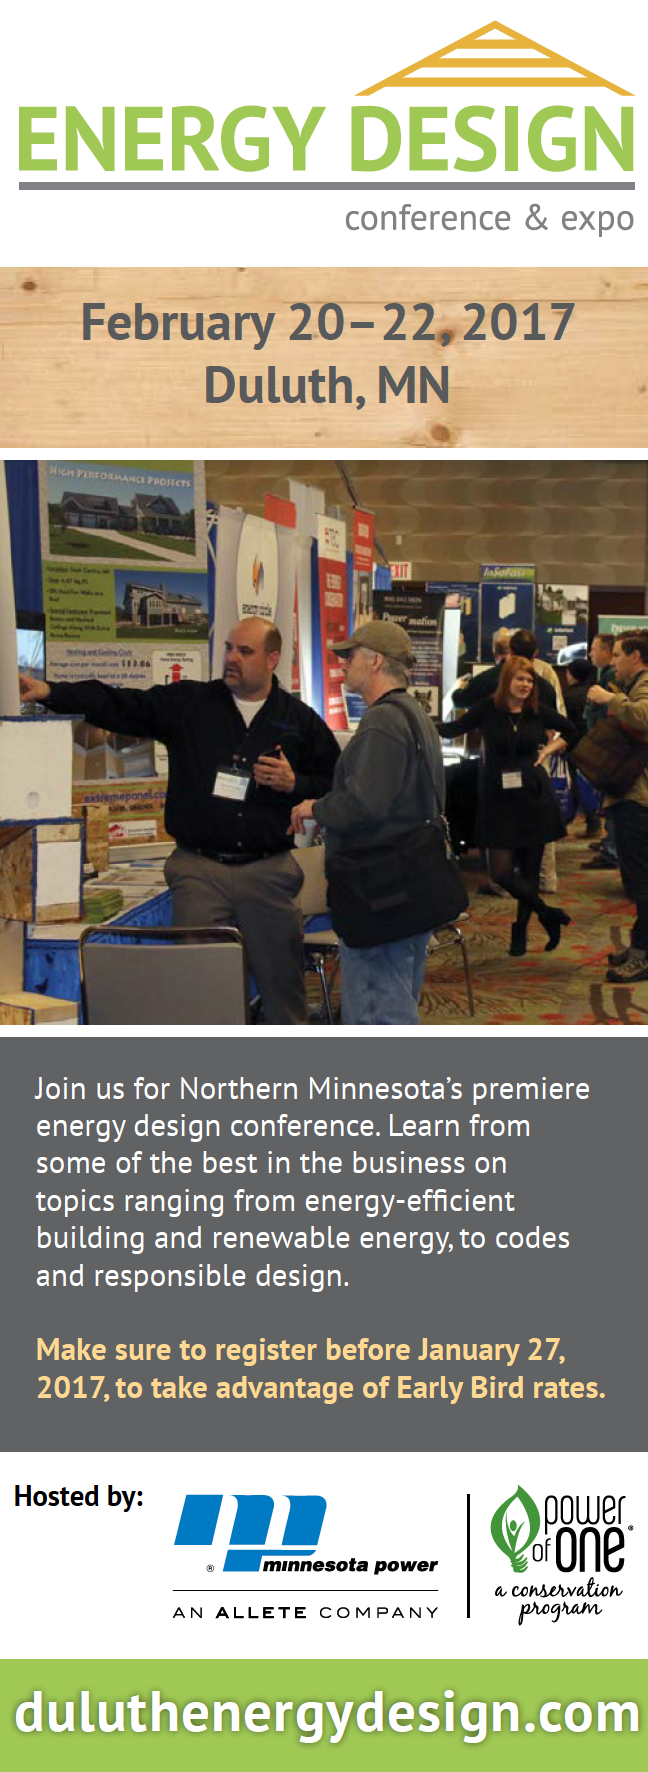 - We placed a number of ads for this conference. Above is a column-style add that ran in Home Energy magazine, a publication dedicated to green building.